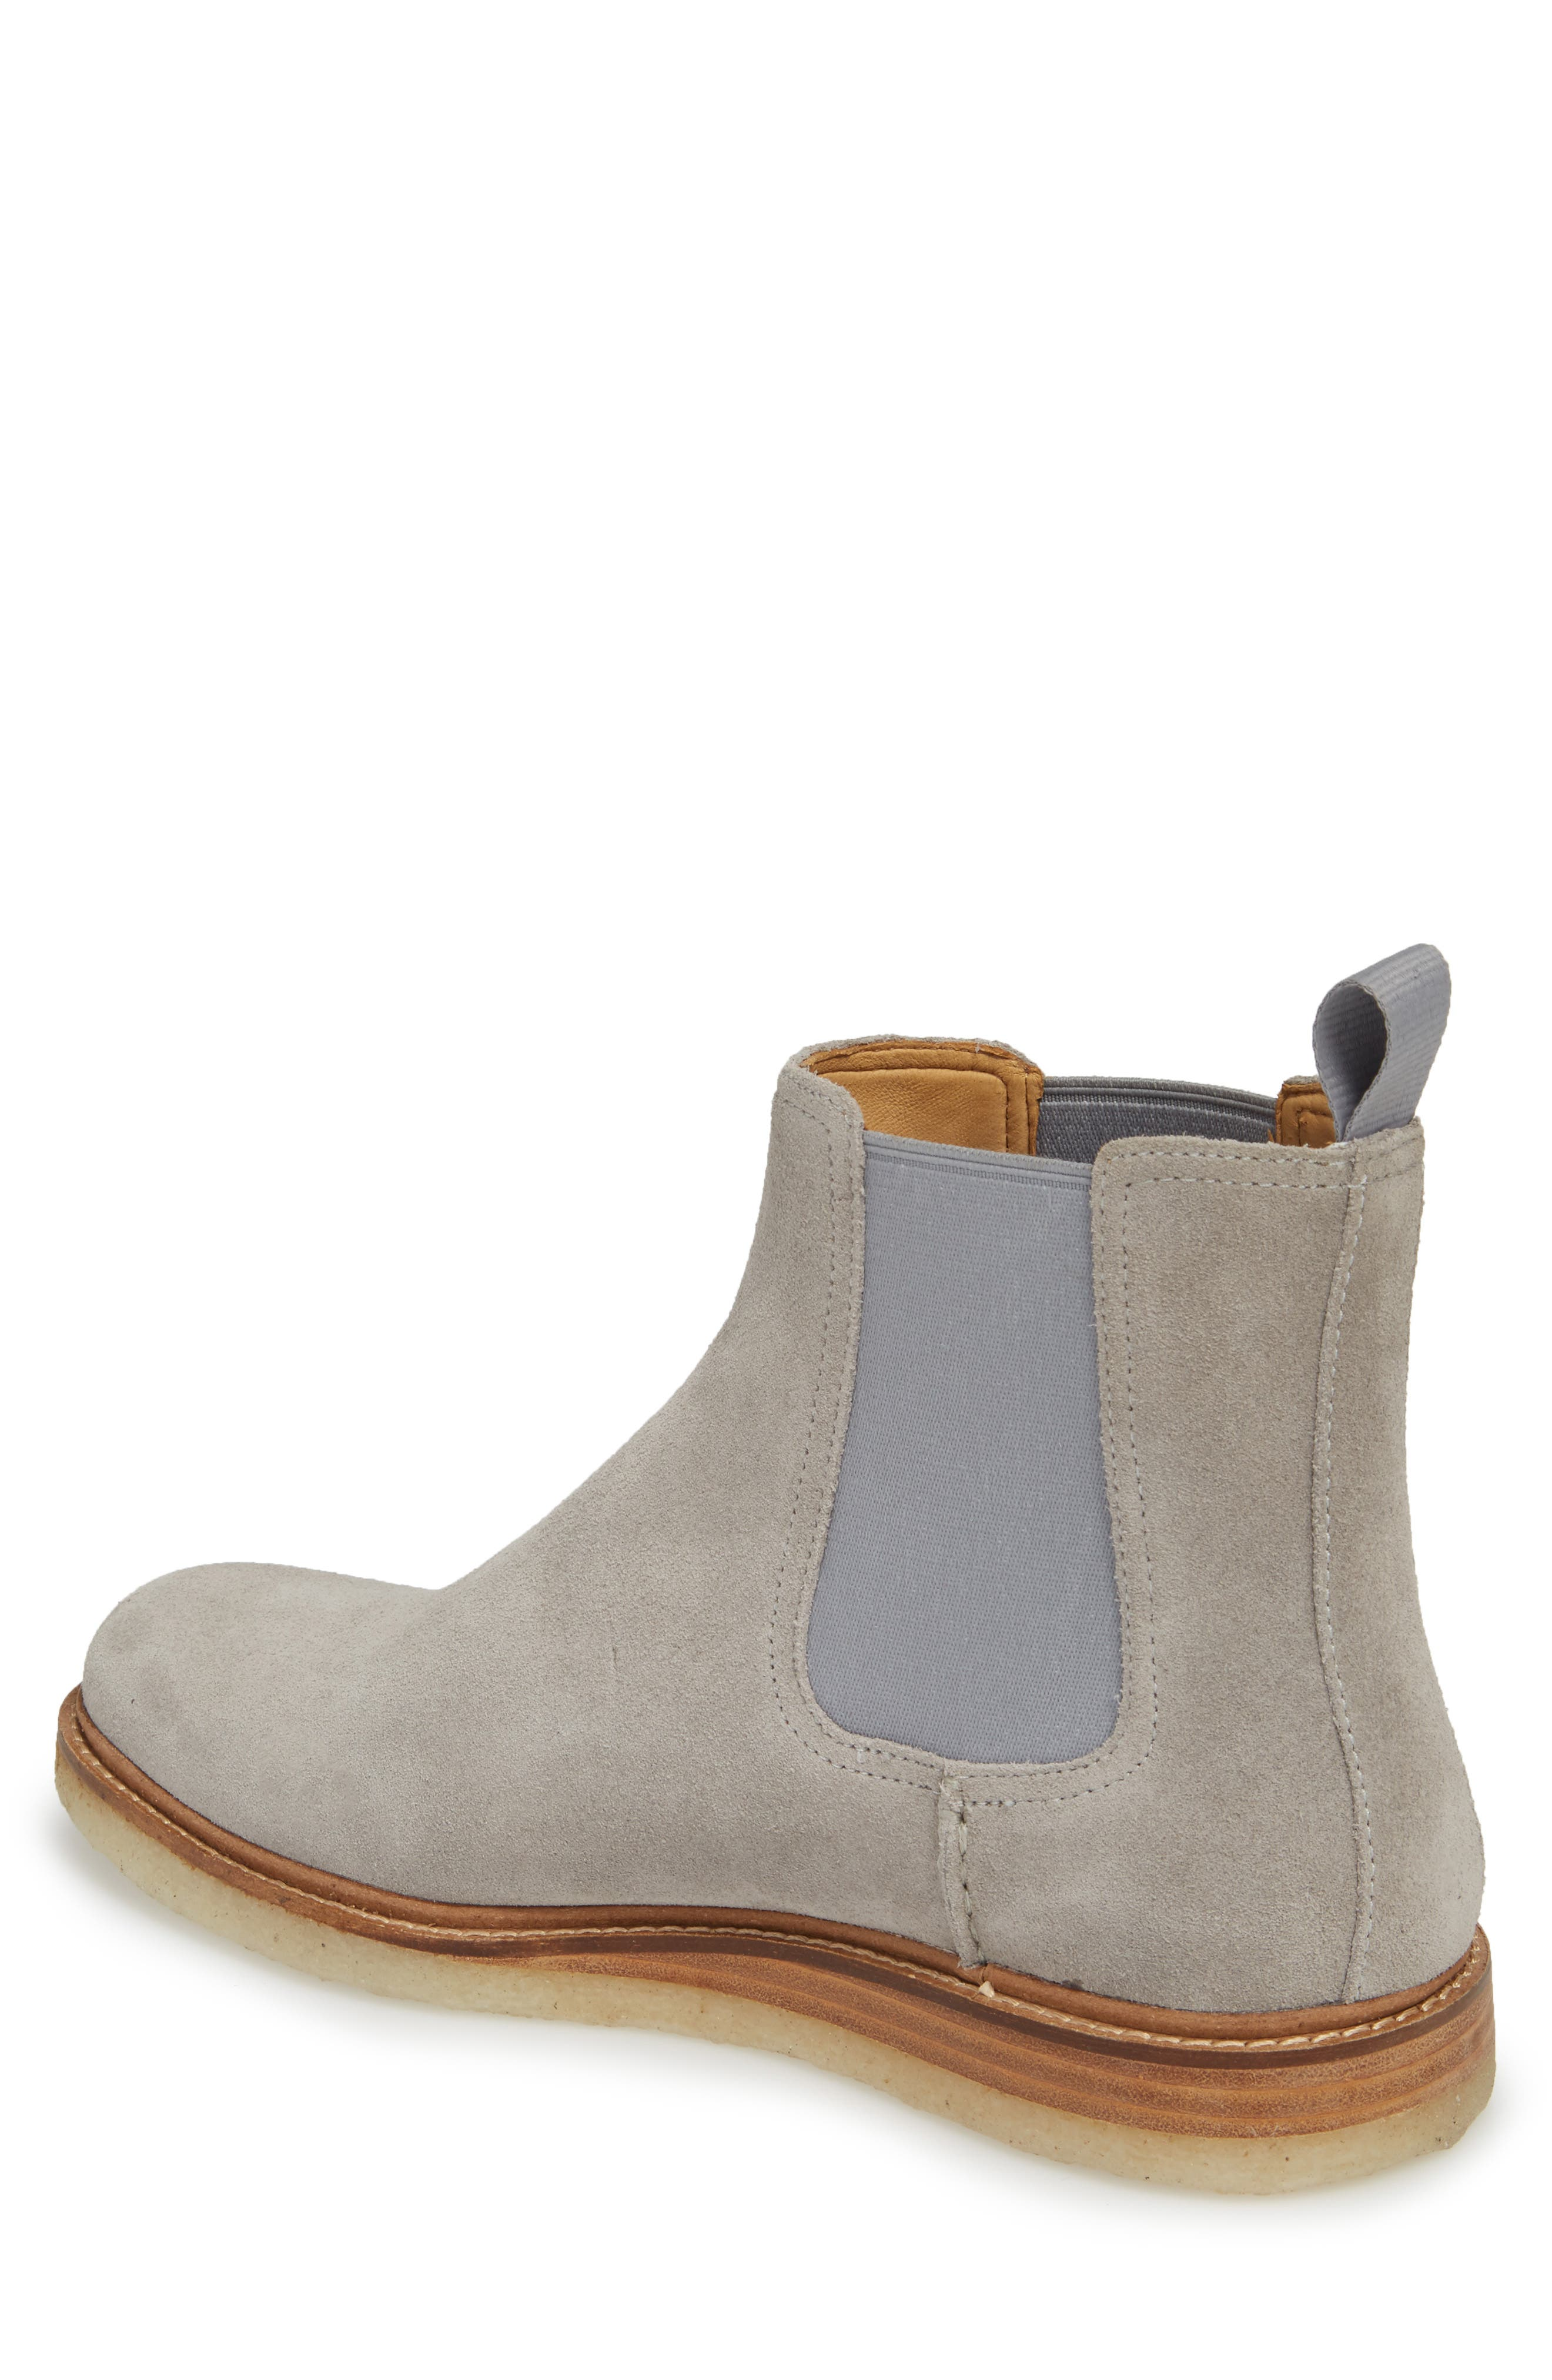 Gold Cup Crepe Chelsea Boot,                             Alternate thumbnail 2, color,                             020